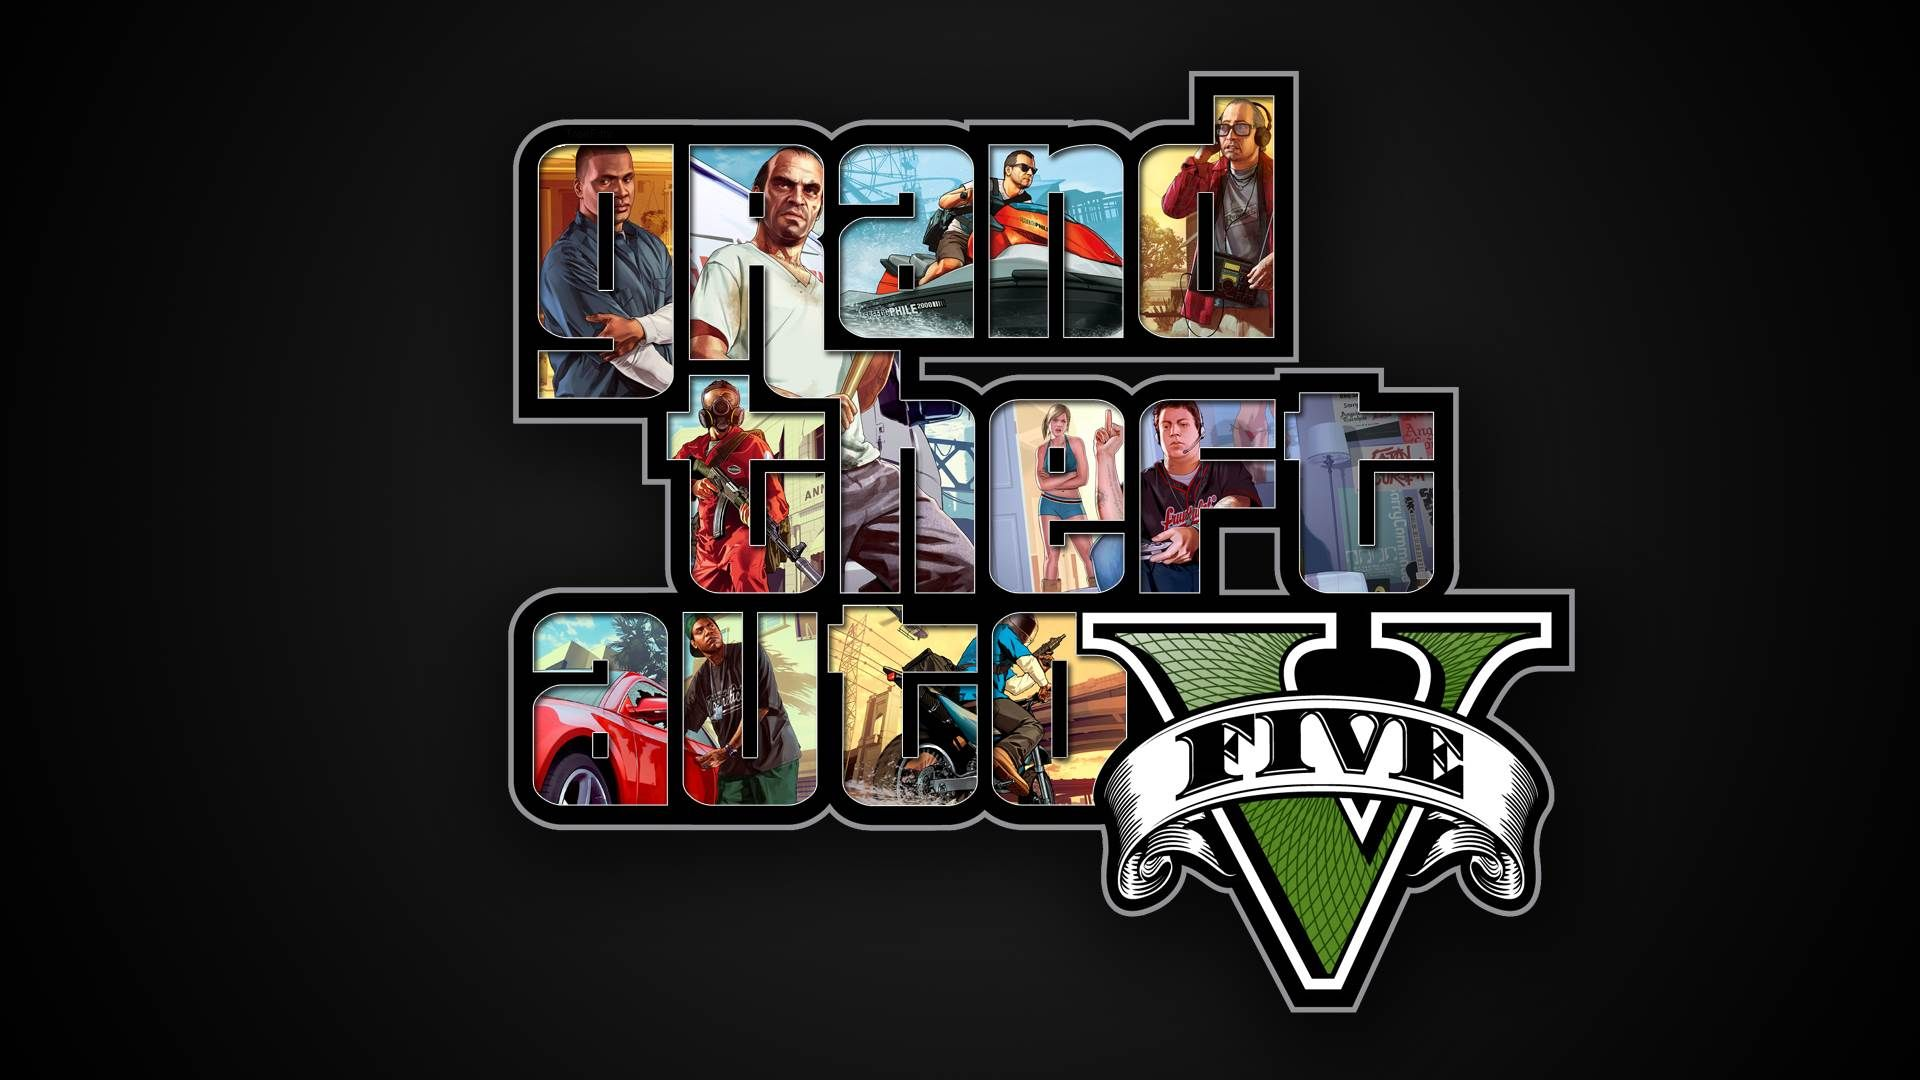 Gta V Wallpaper U Wallpaper Free Download X Gta V Wallpaper Adorable Wallpapers